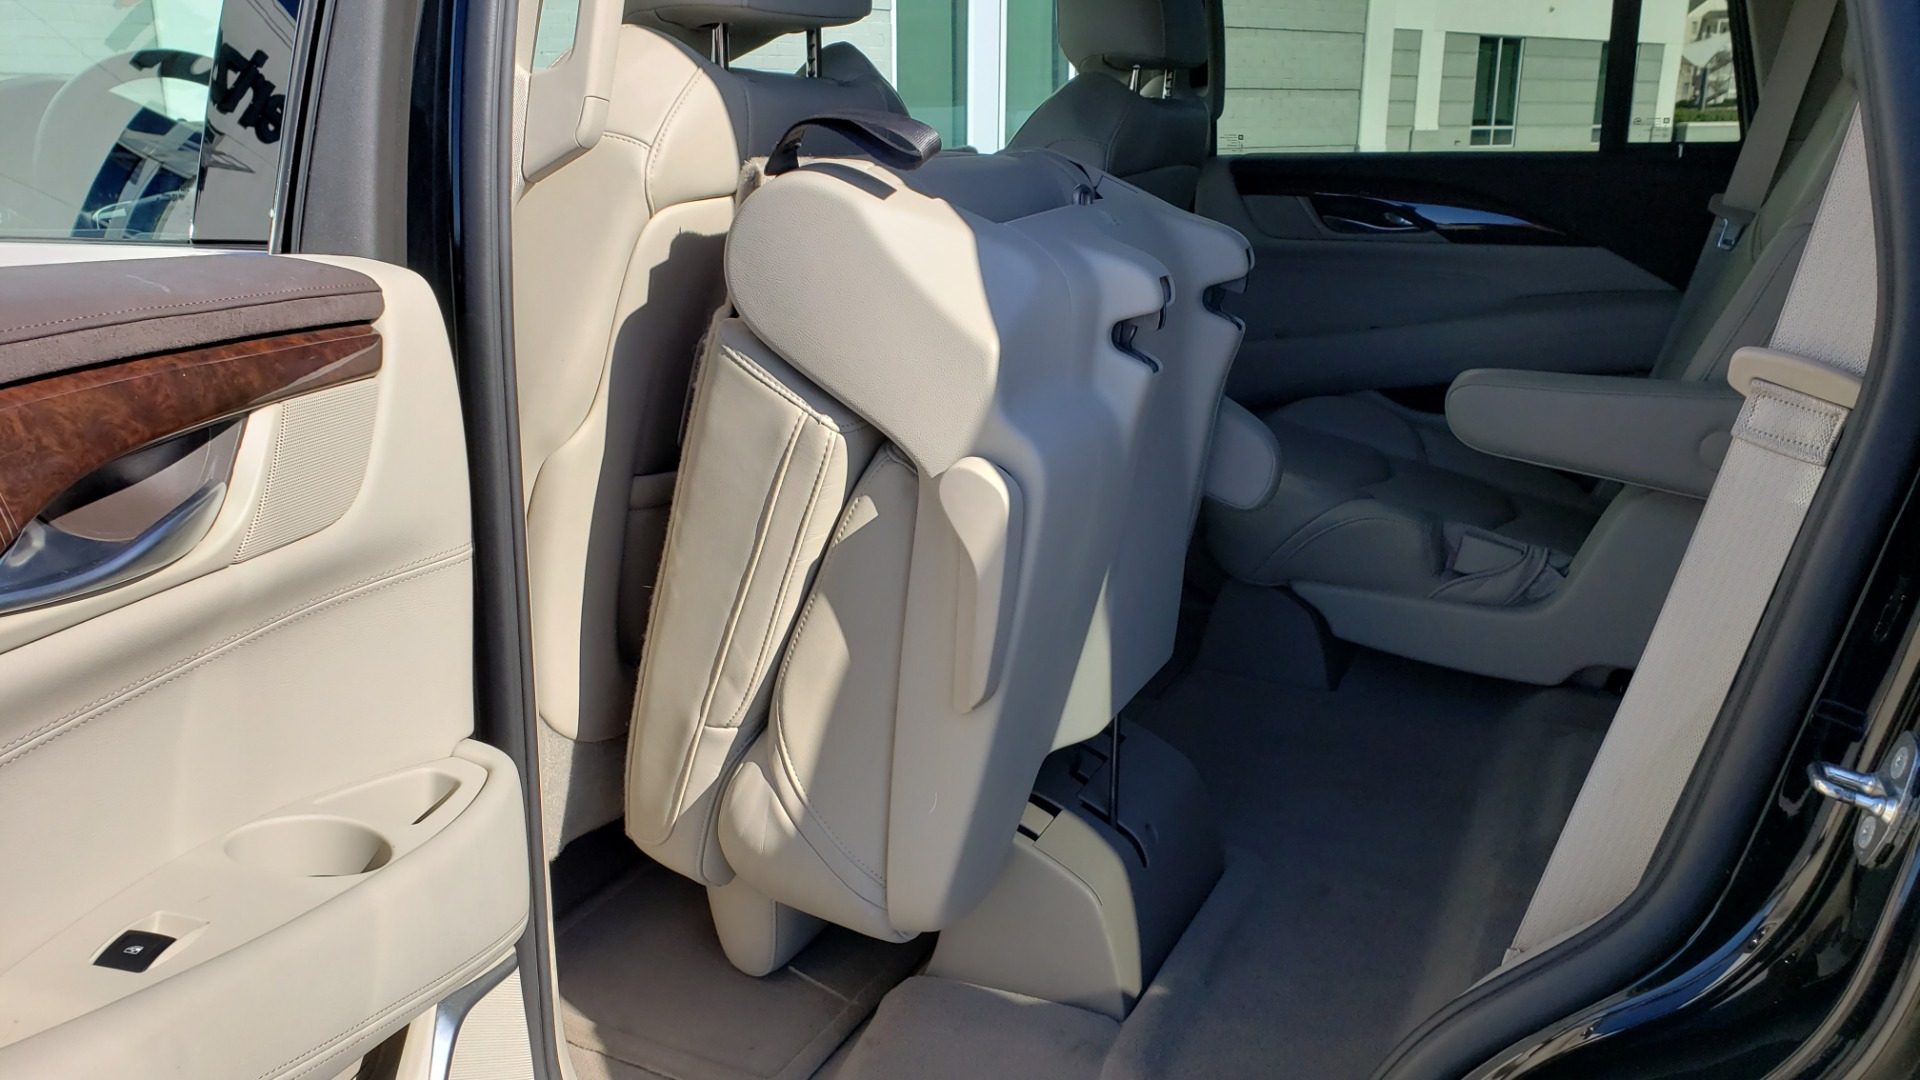 Used 2015 Cadillac ESCALADE PREMIUM 4WD / NAV / SUNROOF / REARVIEW / 3-ROW for sale Sold at Formula Imports in Charlotte NC 28227 68